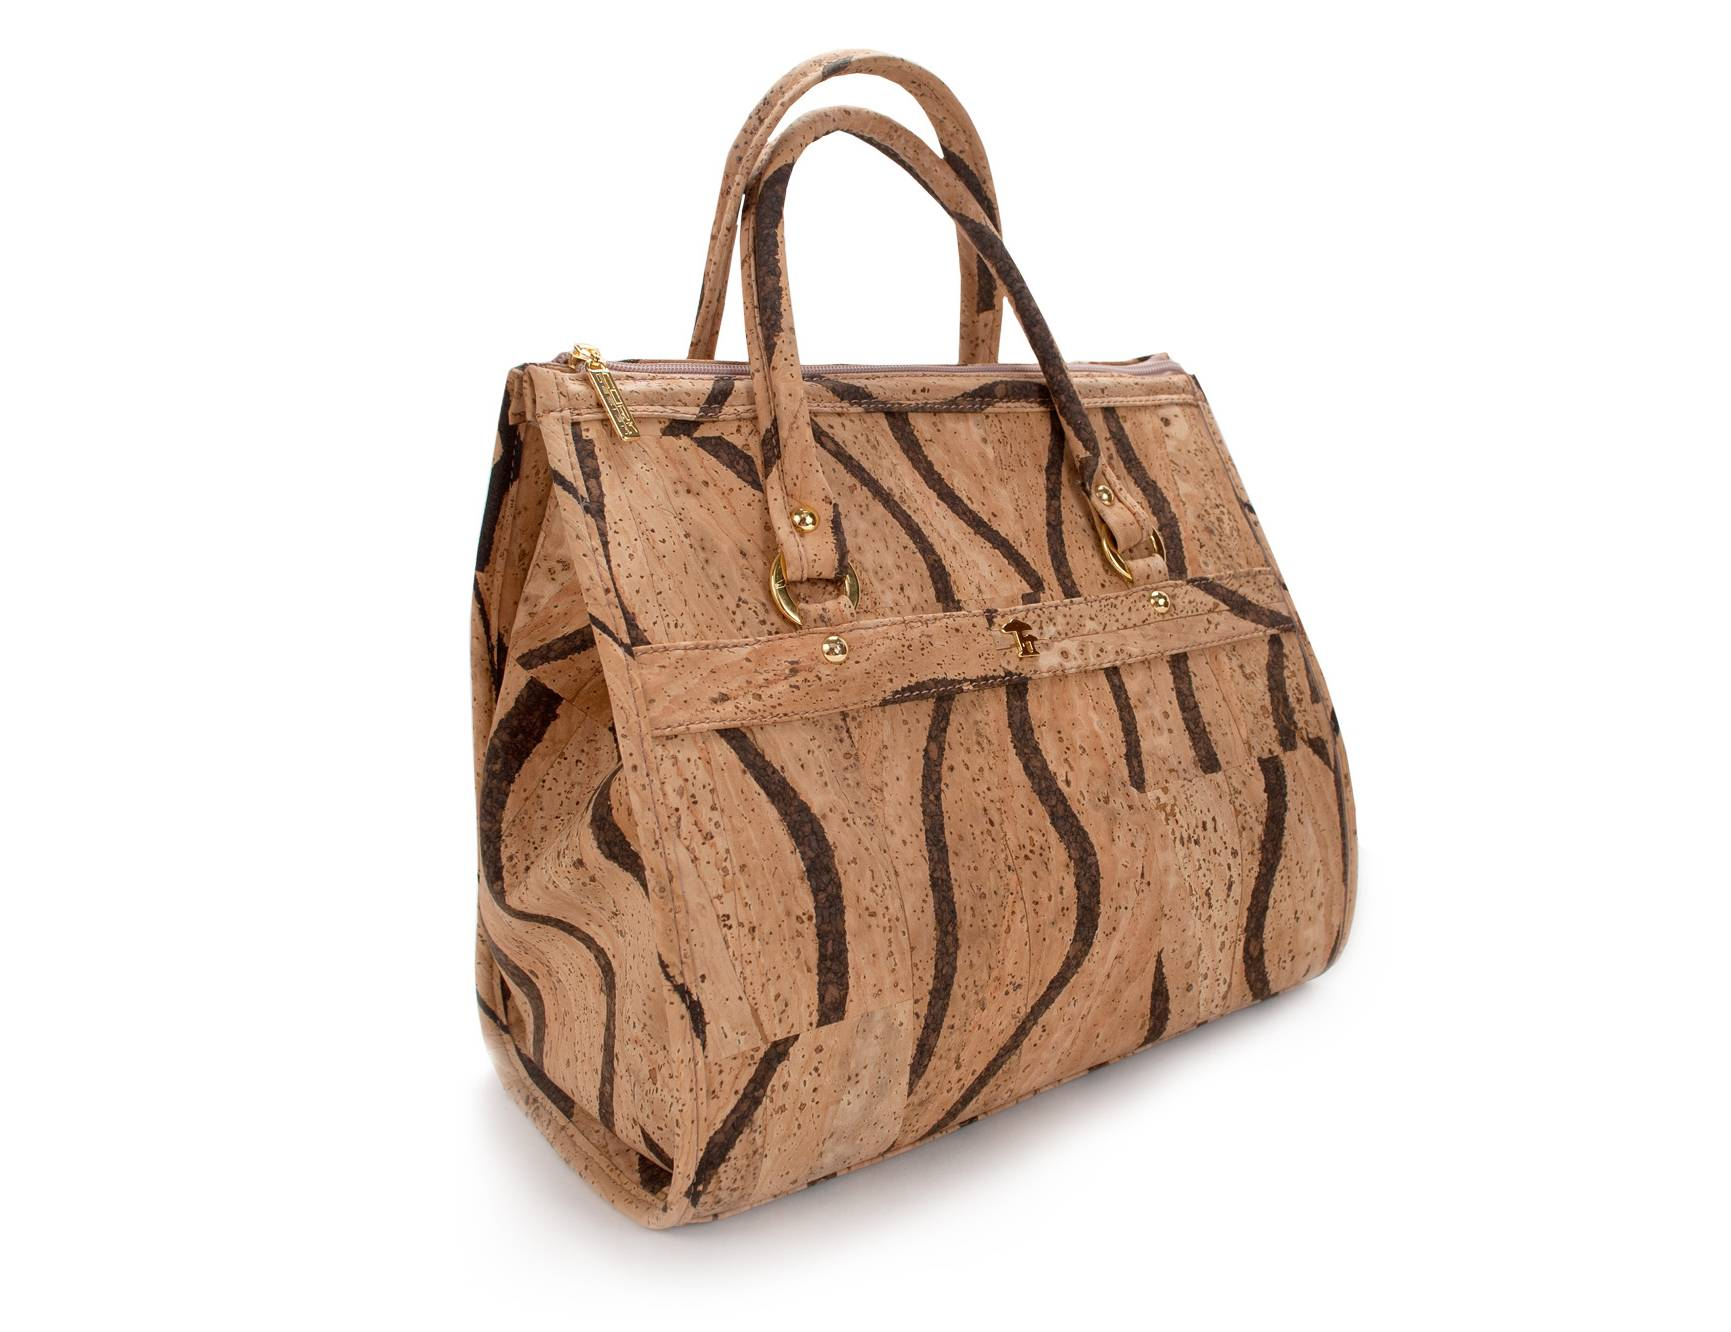 This Okapi handbag is made of cork fabric. Embraced by some progressive furniture makers decades ago and a staple in housewares, cork has found a larger place among shoes, handbags, jewelry and other fashion accessories.